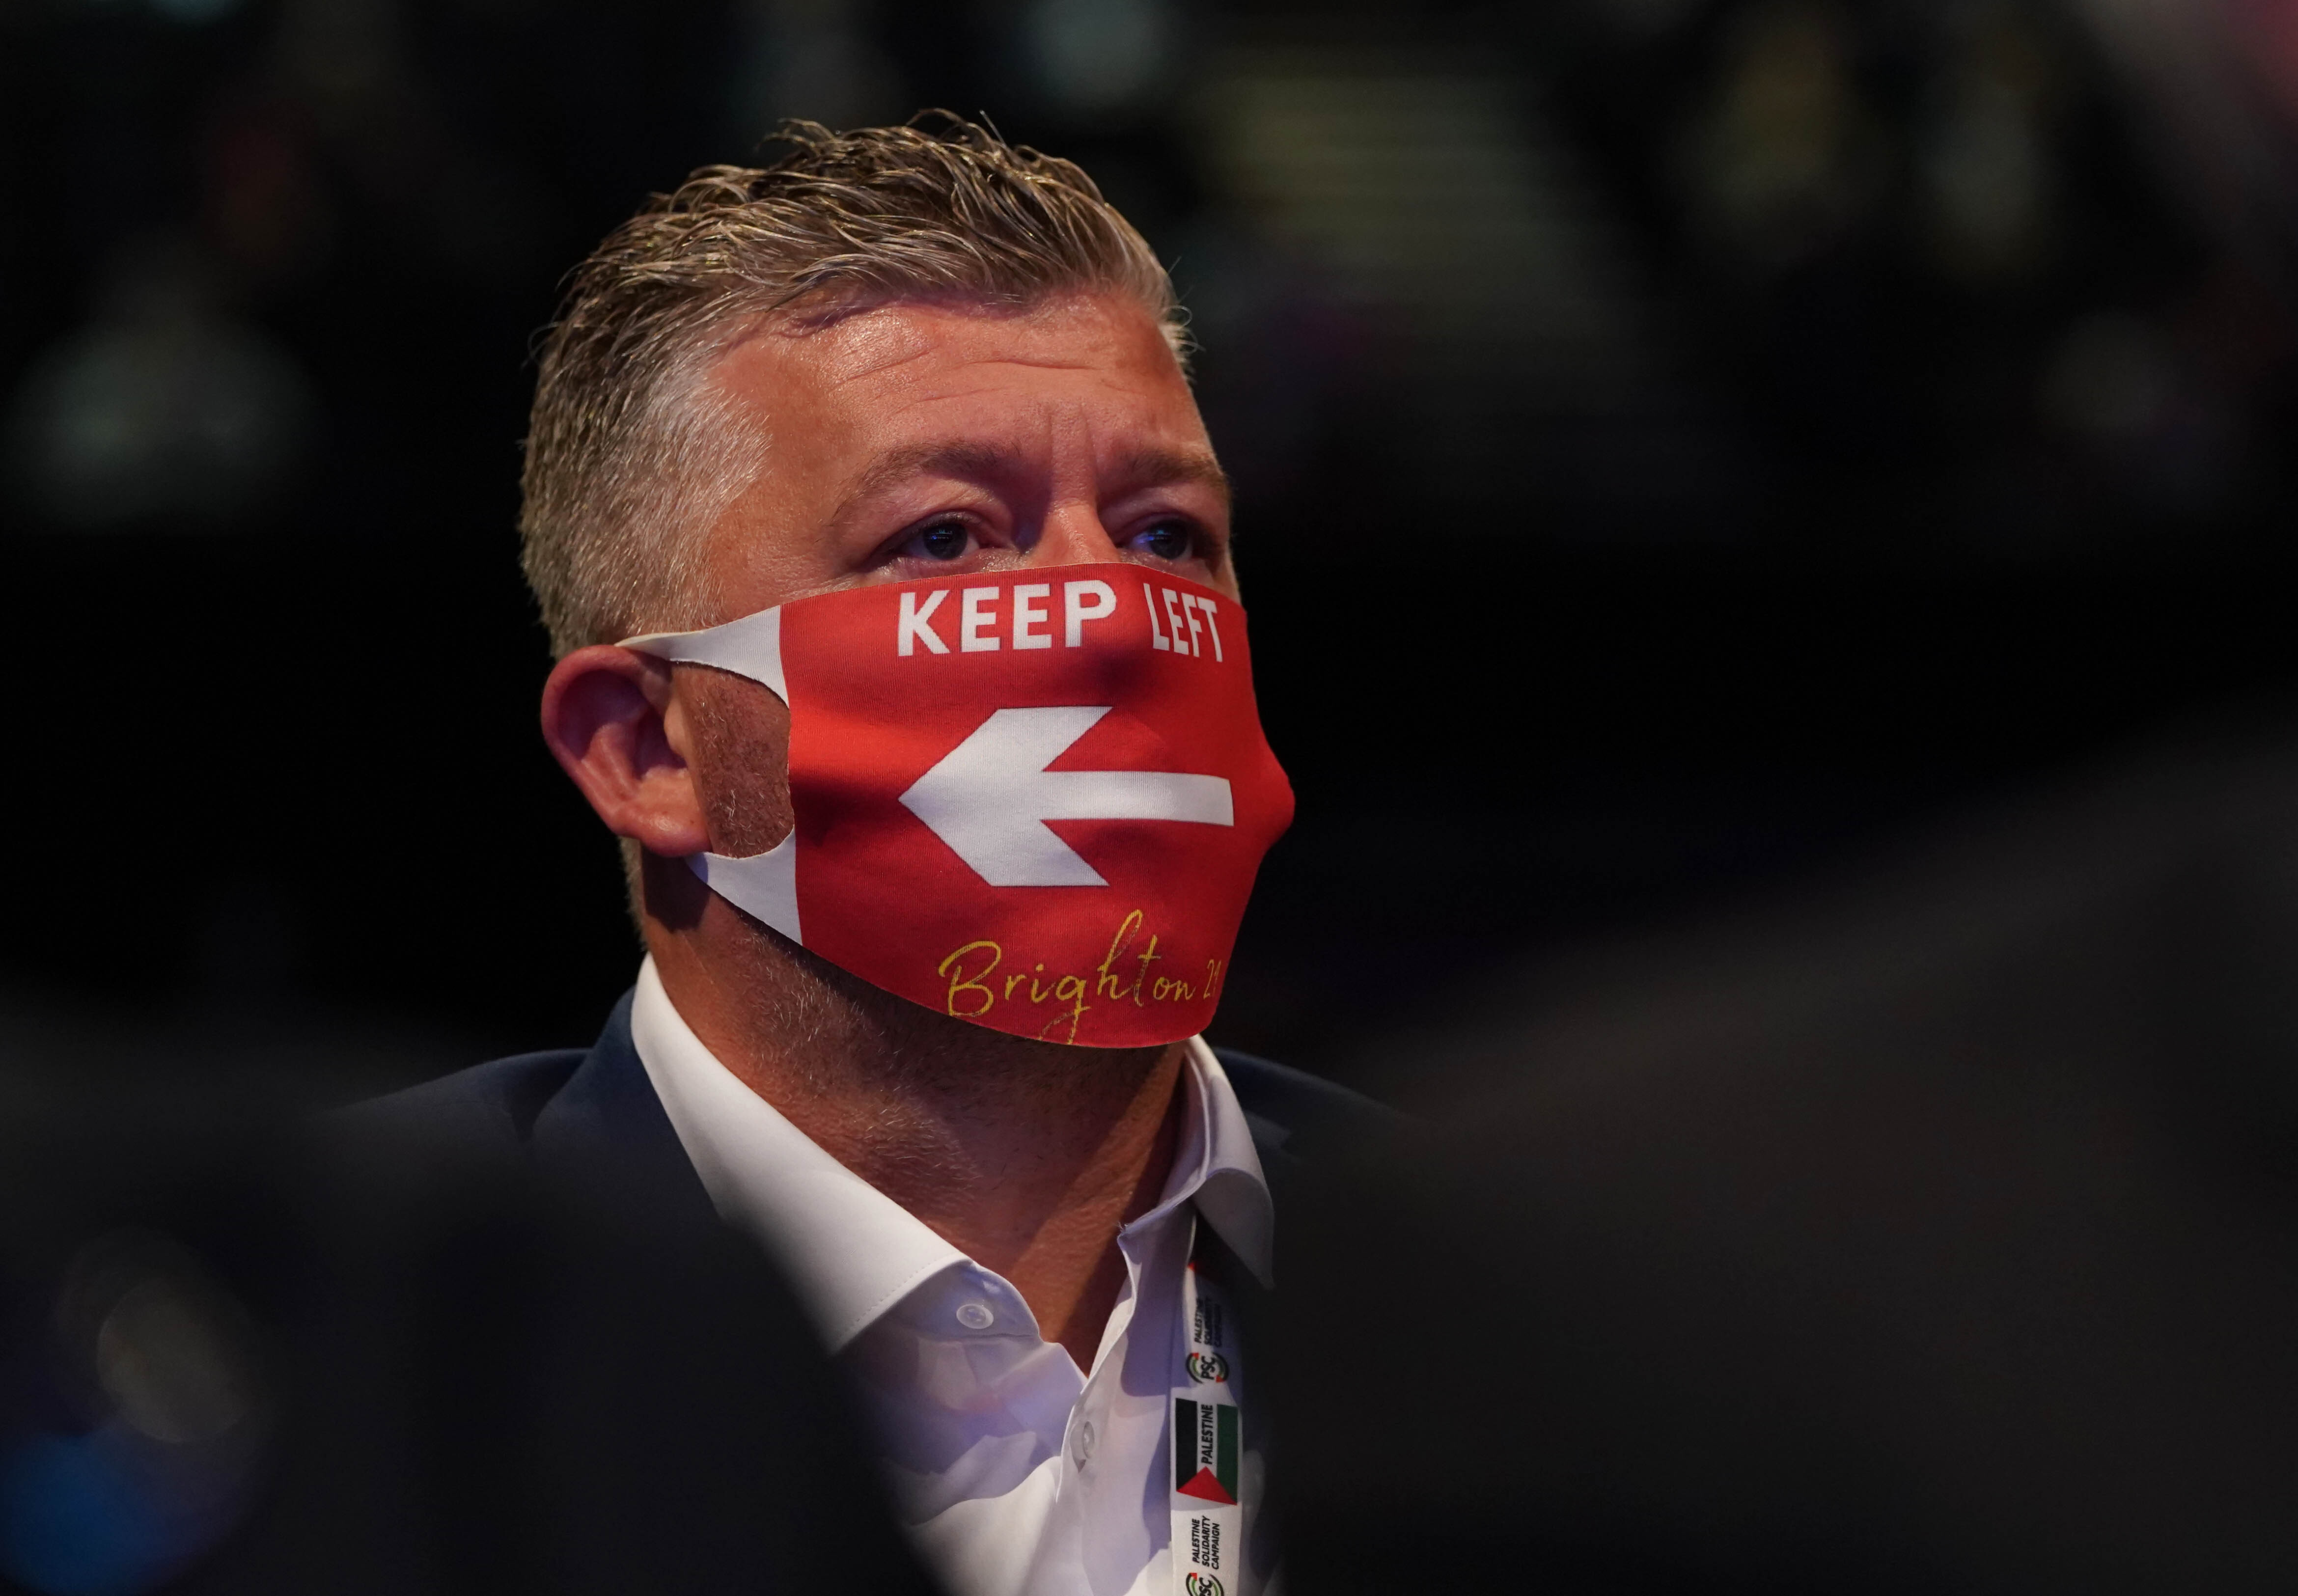 <p>A delegate in the audience listens to speeches at the Labour Party conference in Brighton. Picture date: Tuesday September 28, 2021.</p>